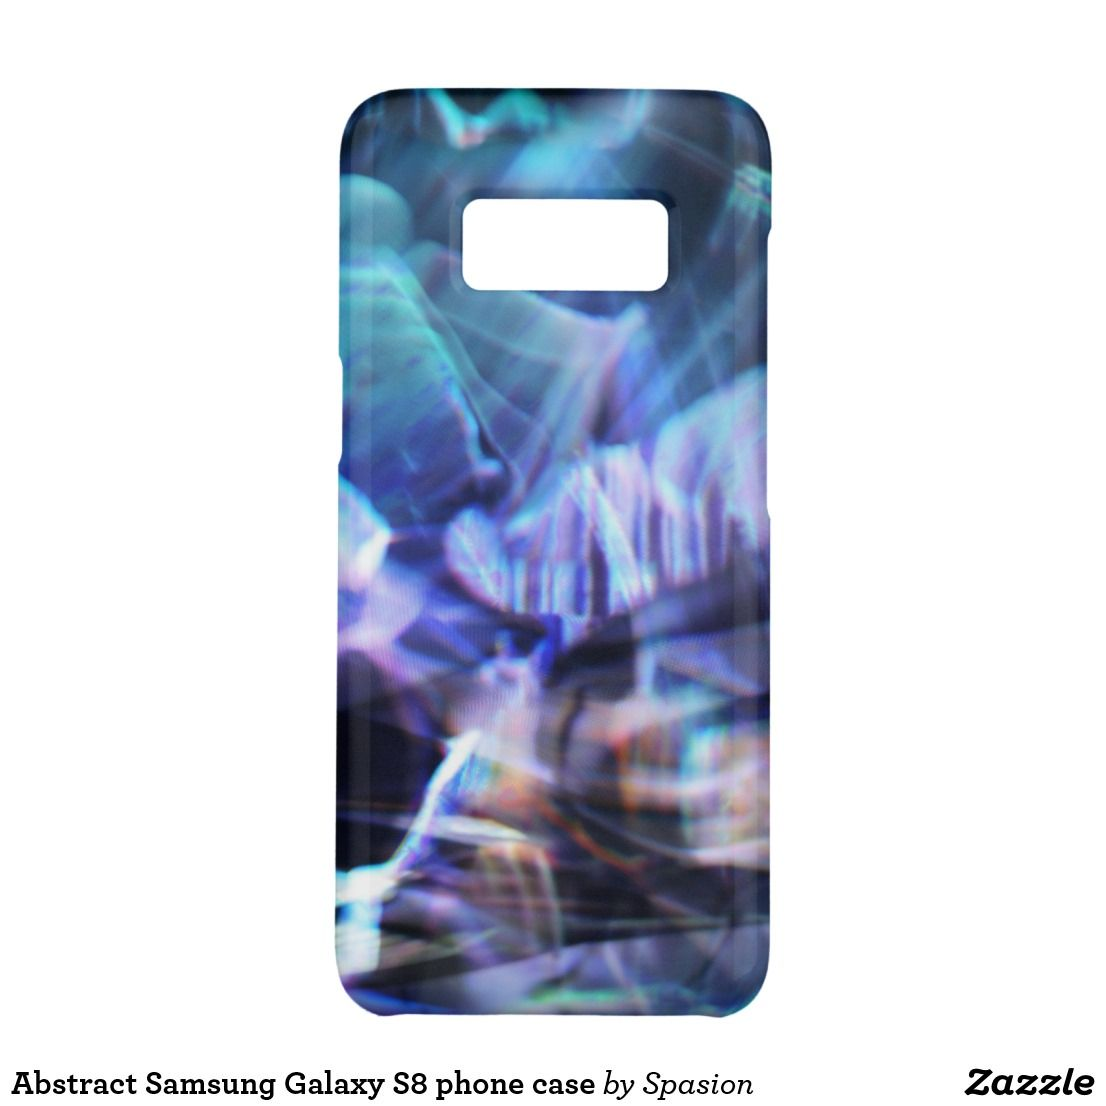 Abstract Samsung Galaxy S8 Phone Case